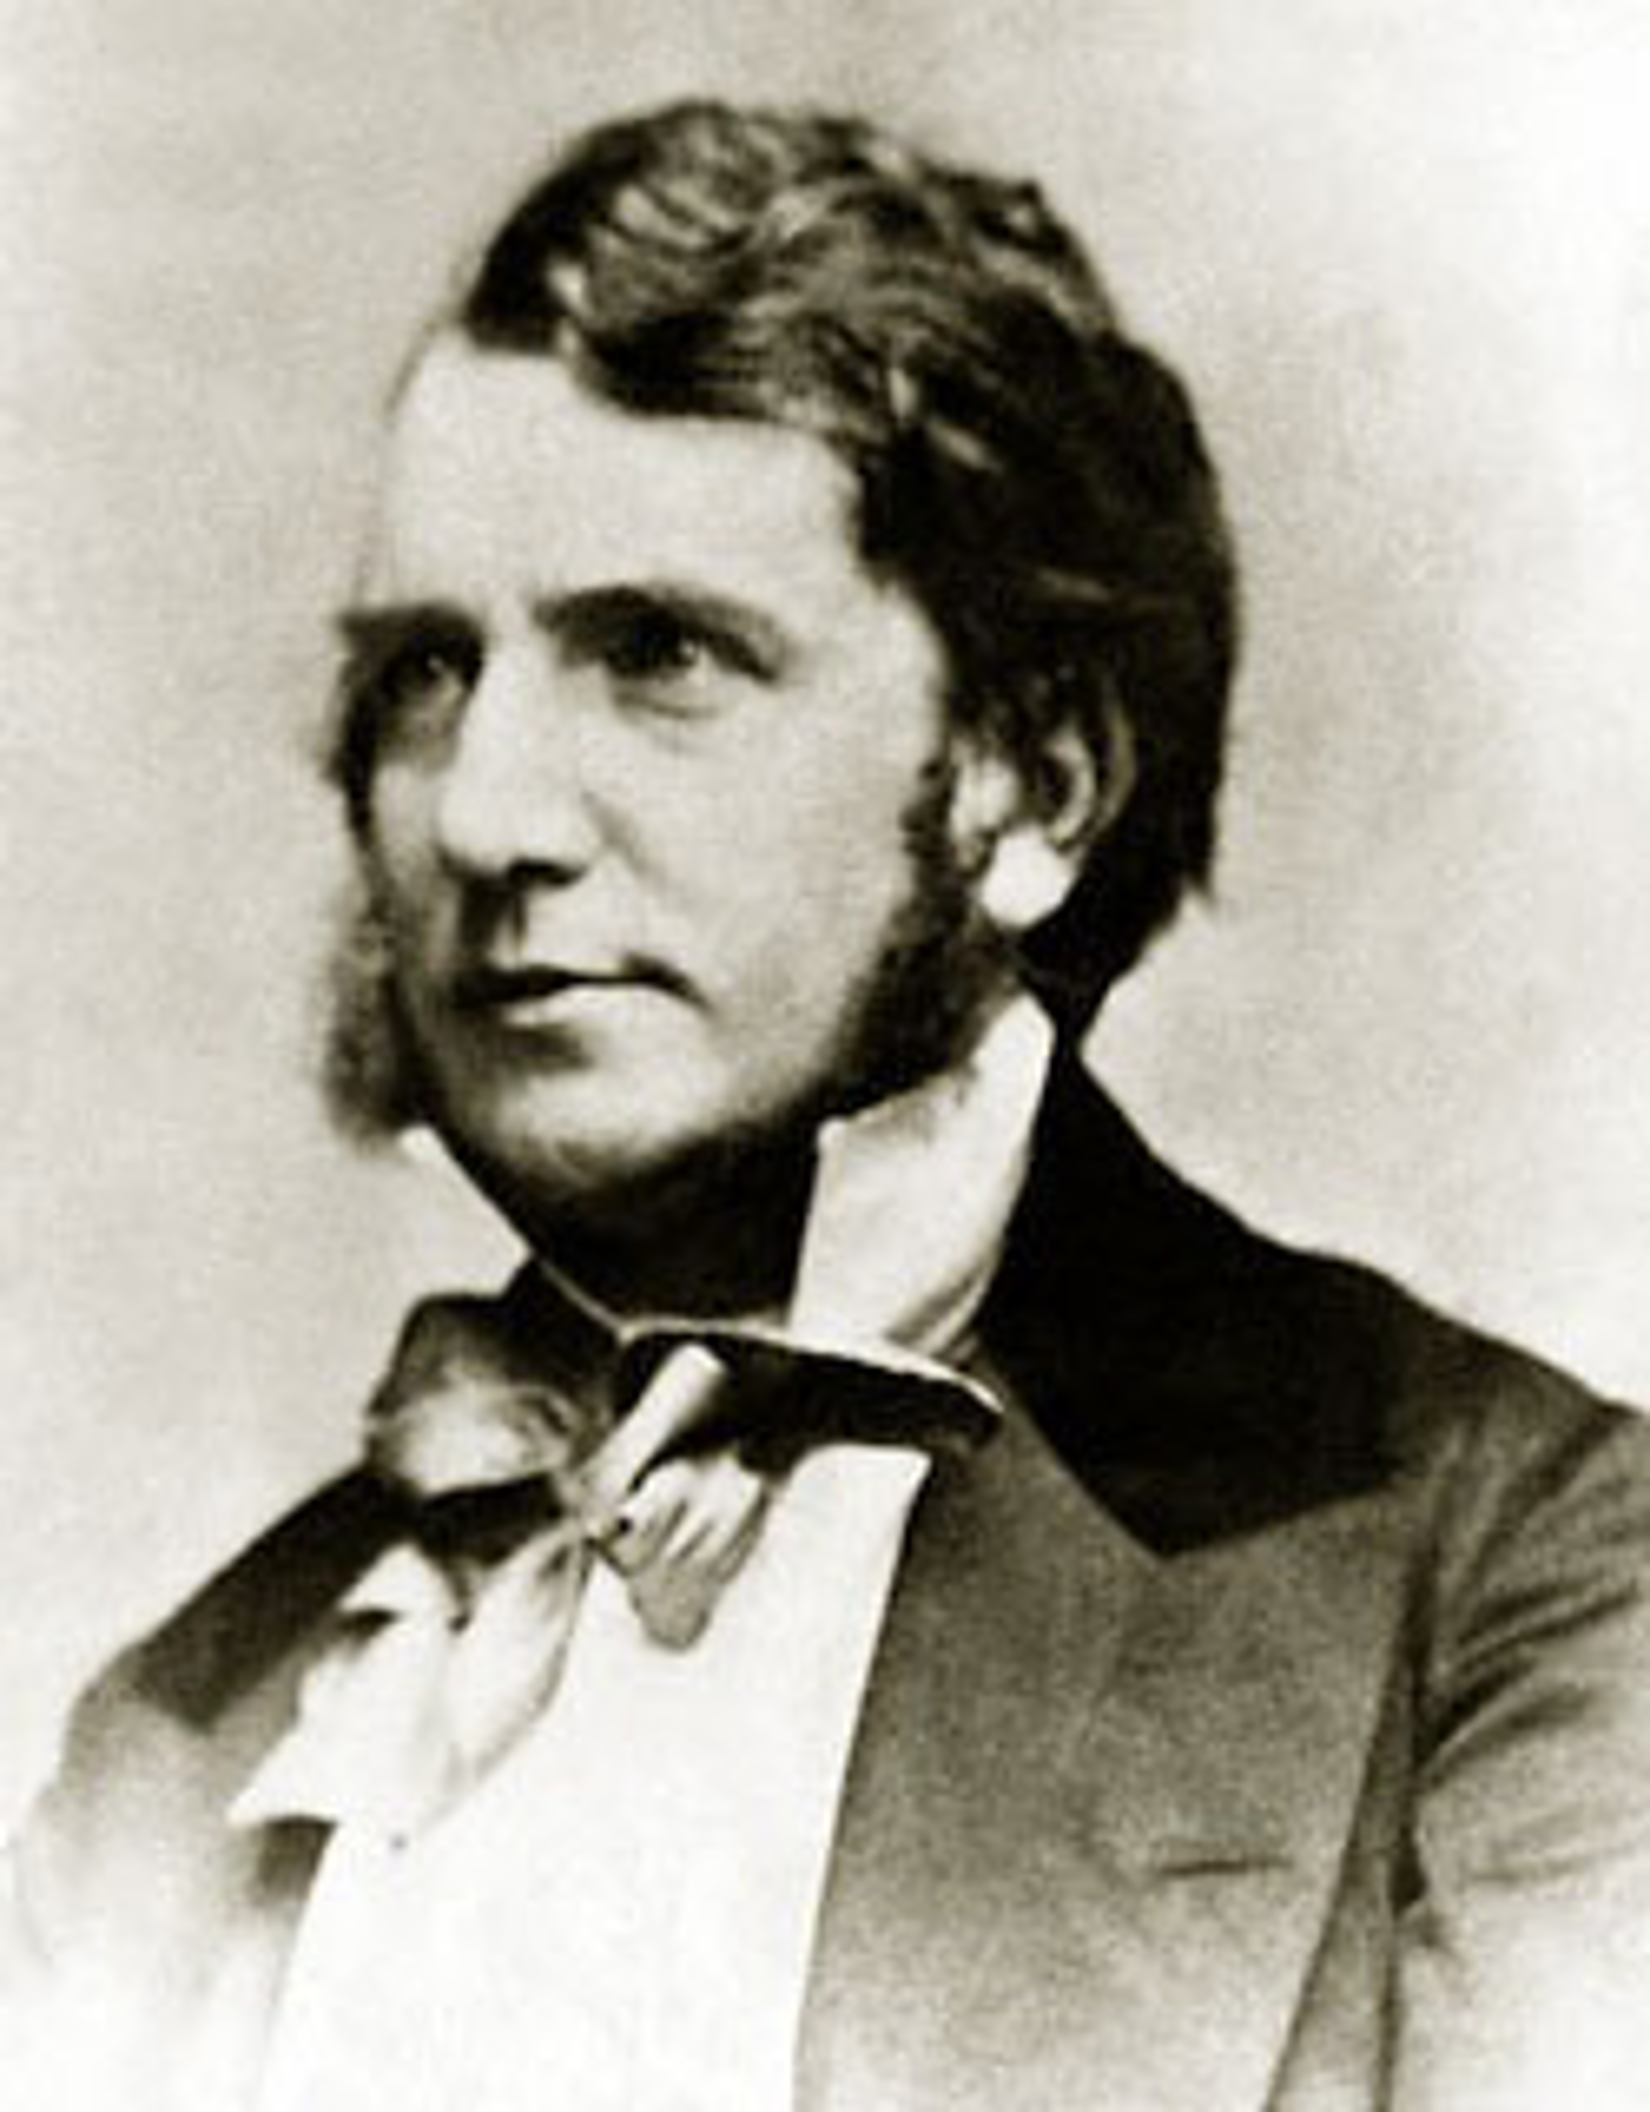 https://upload.wikimedia.org/wikipedia/commons/7/7f/Sheridan_Le_Fanu_002.png